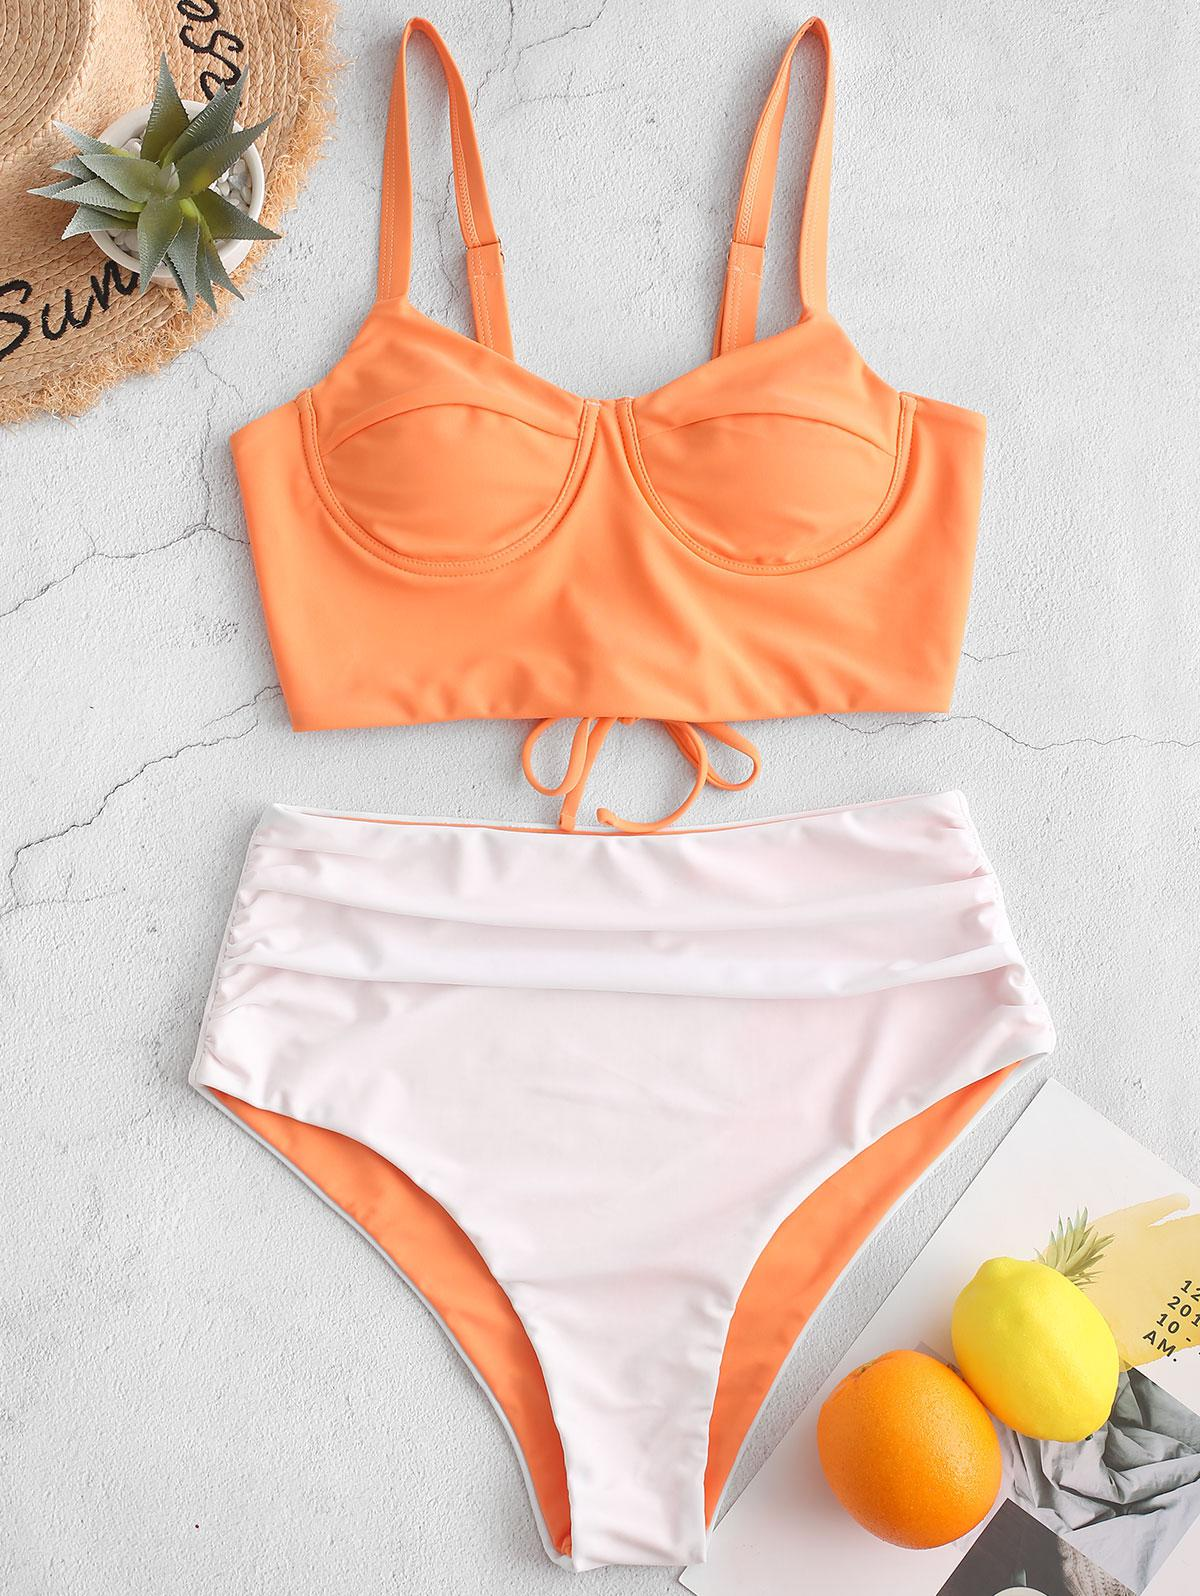 ZAFUL Two Tone Lace Up Push Up High Waisted Tankini Swimsuit, Sandy brown